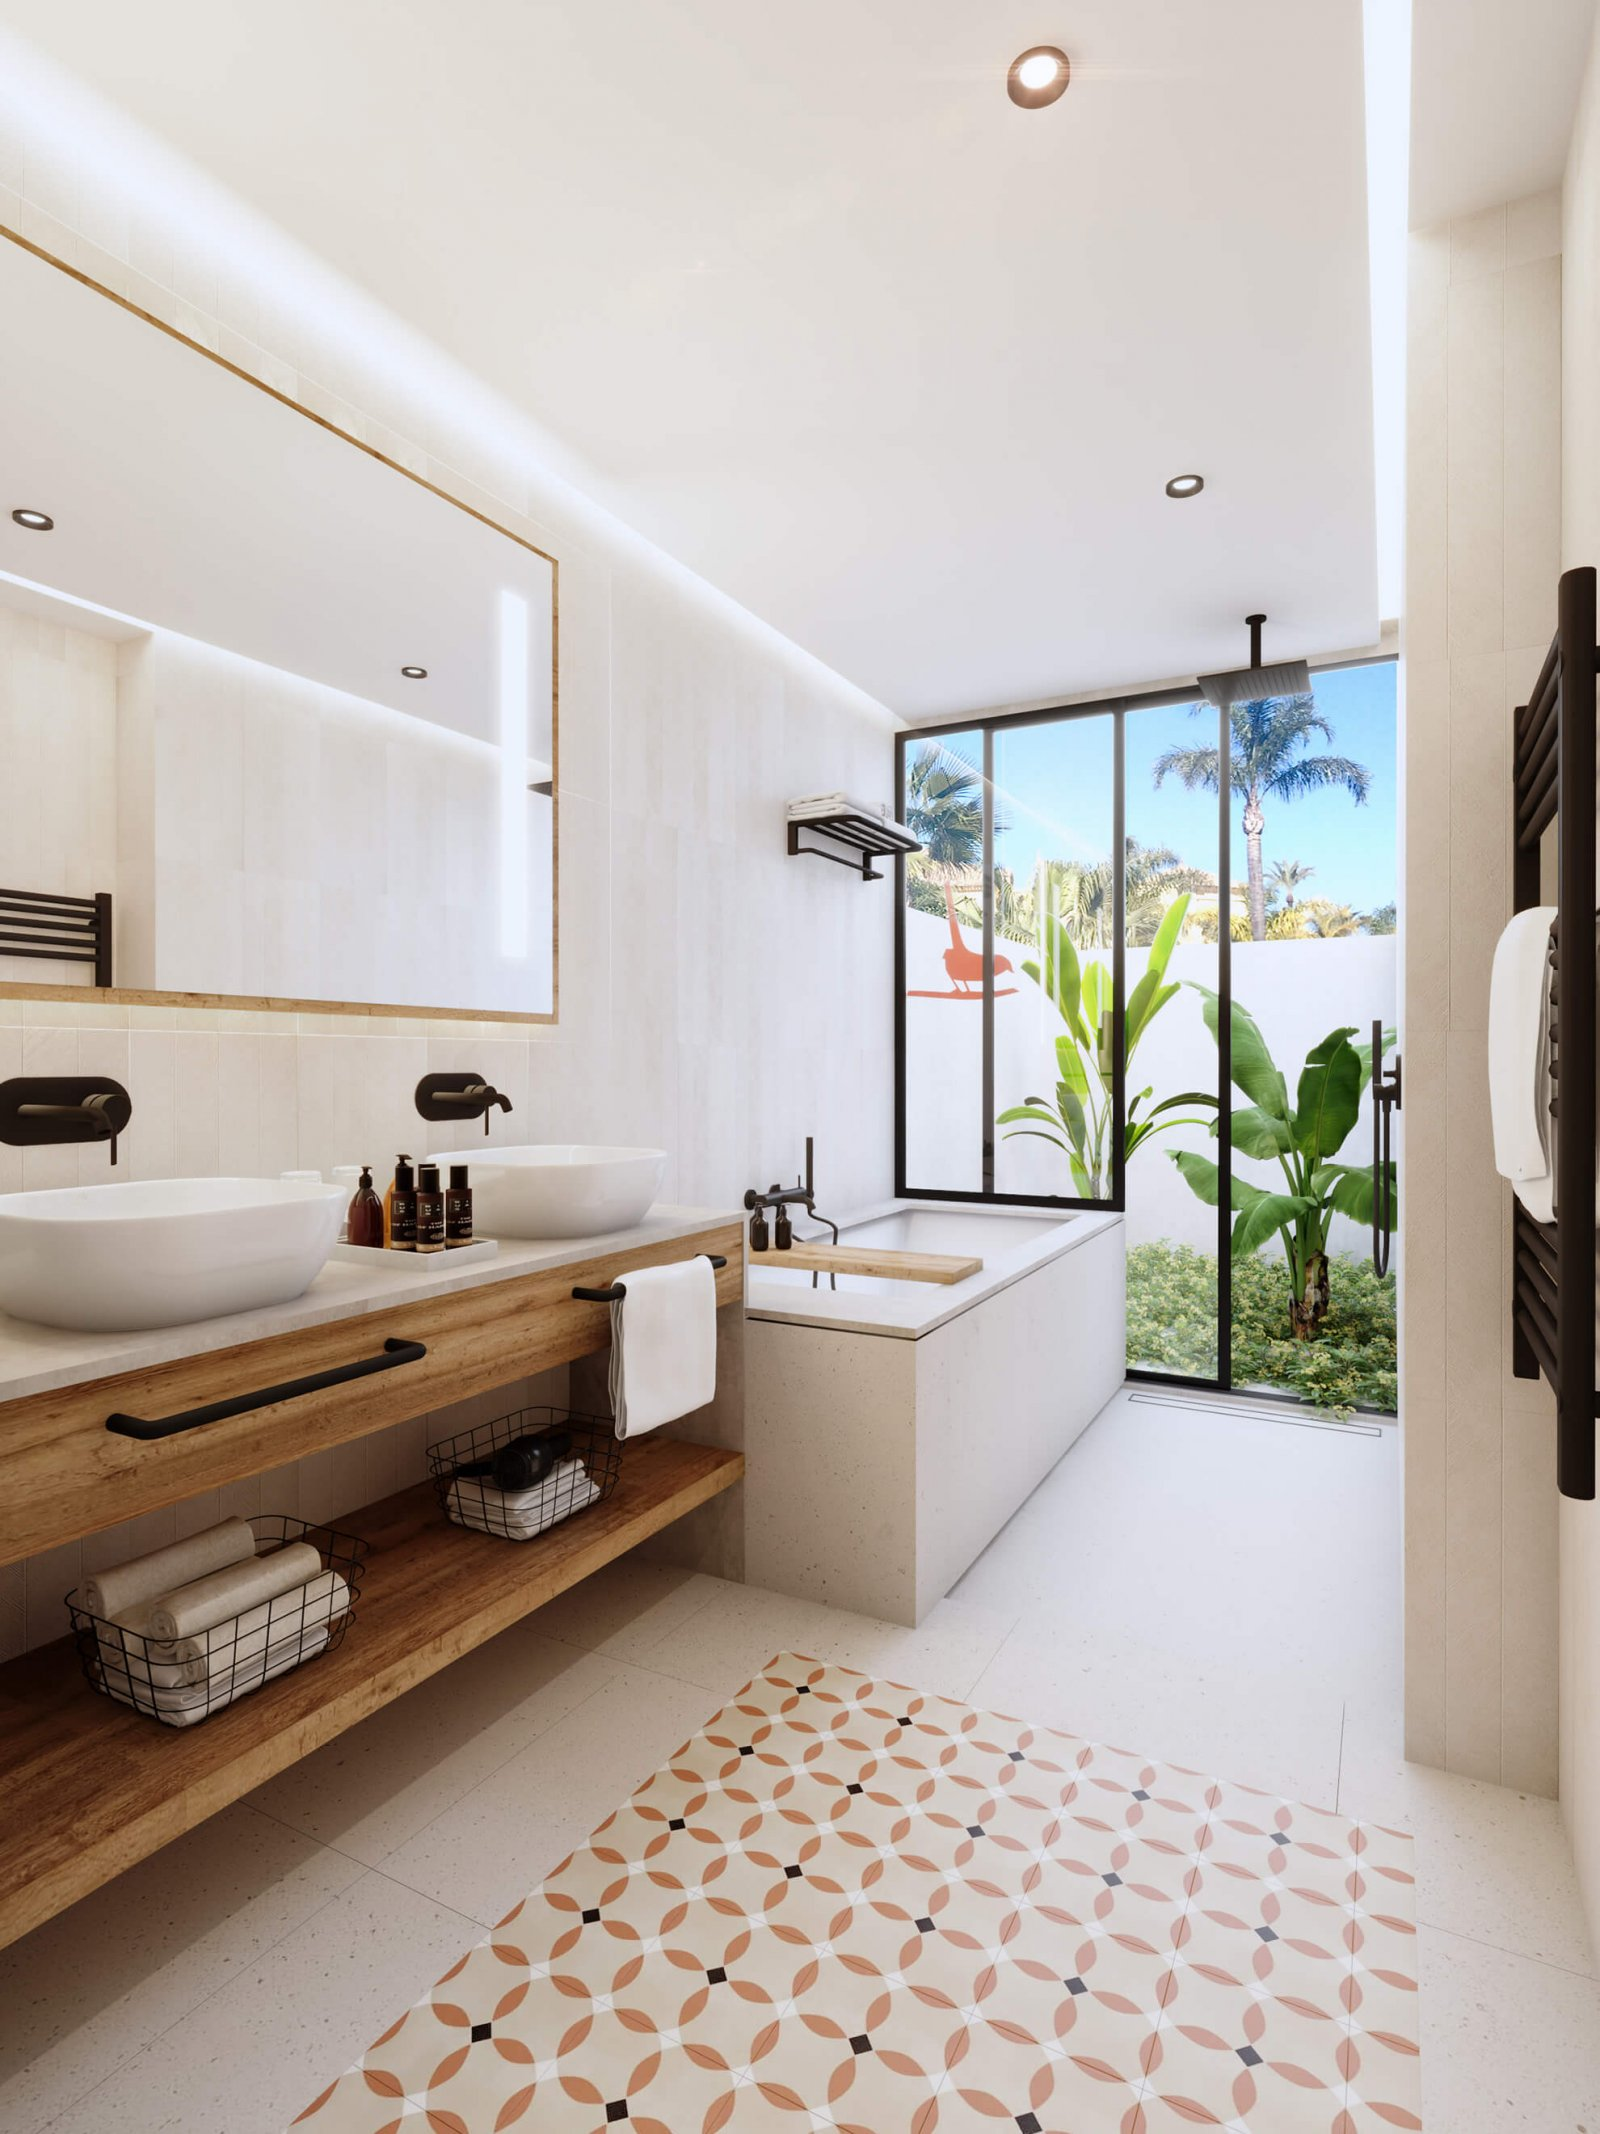 View of the room toilet of the Sotogrande